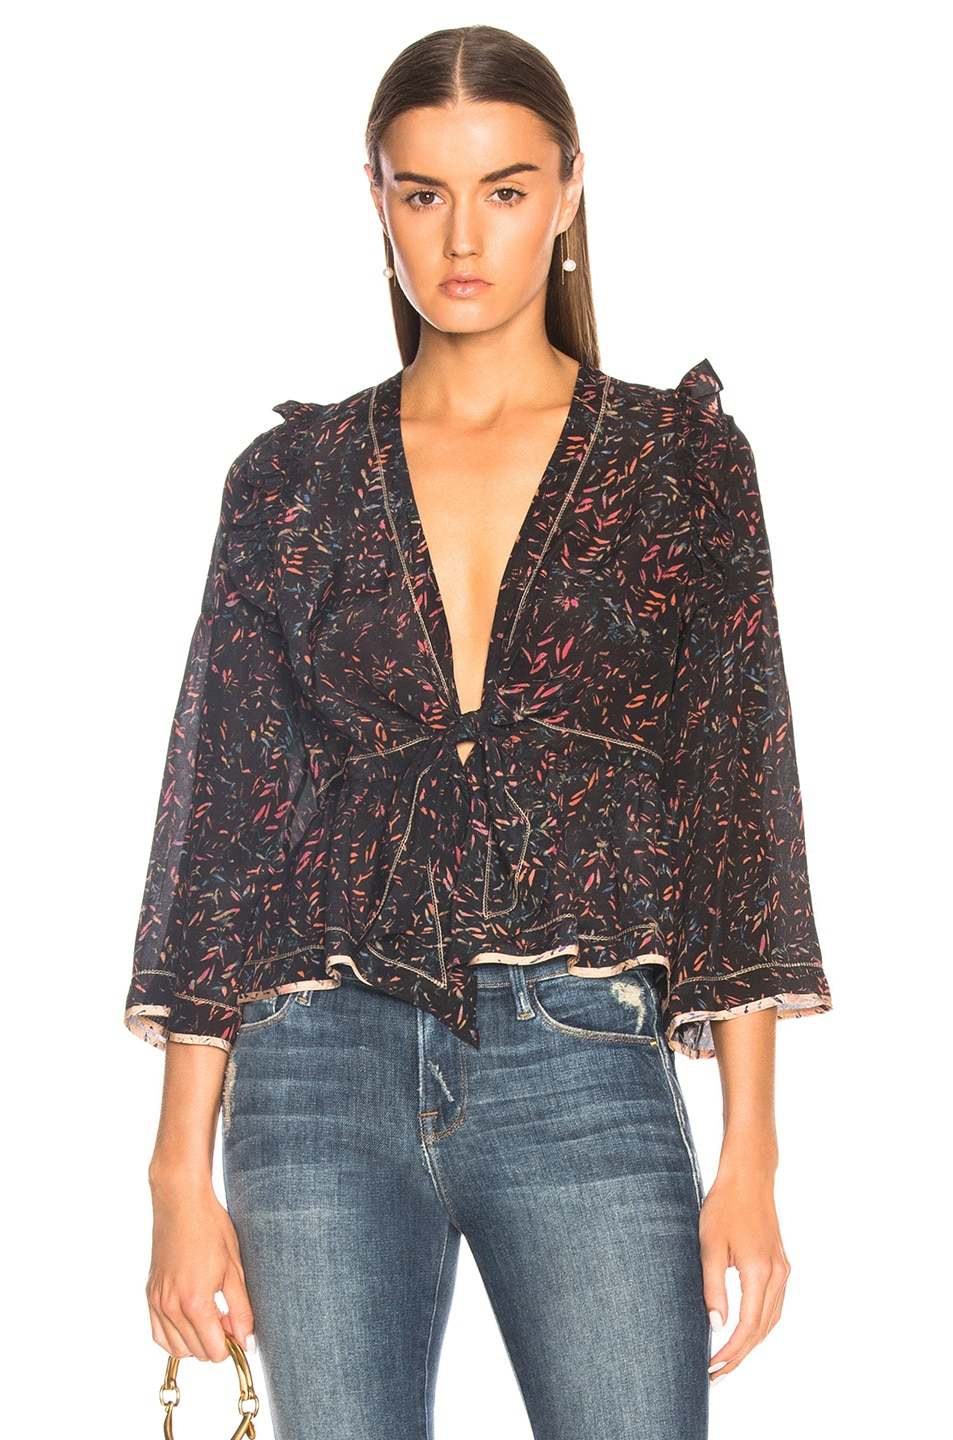 IRO Jarley Top in Abstract,Black,Pink